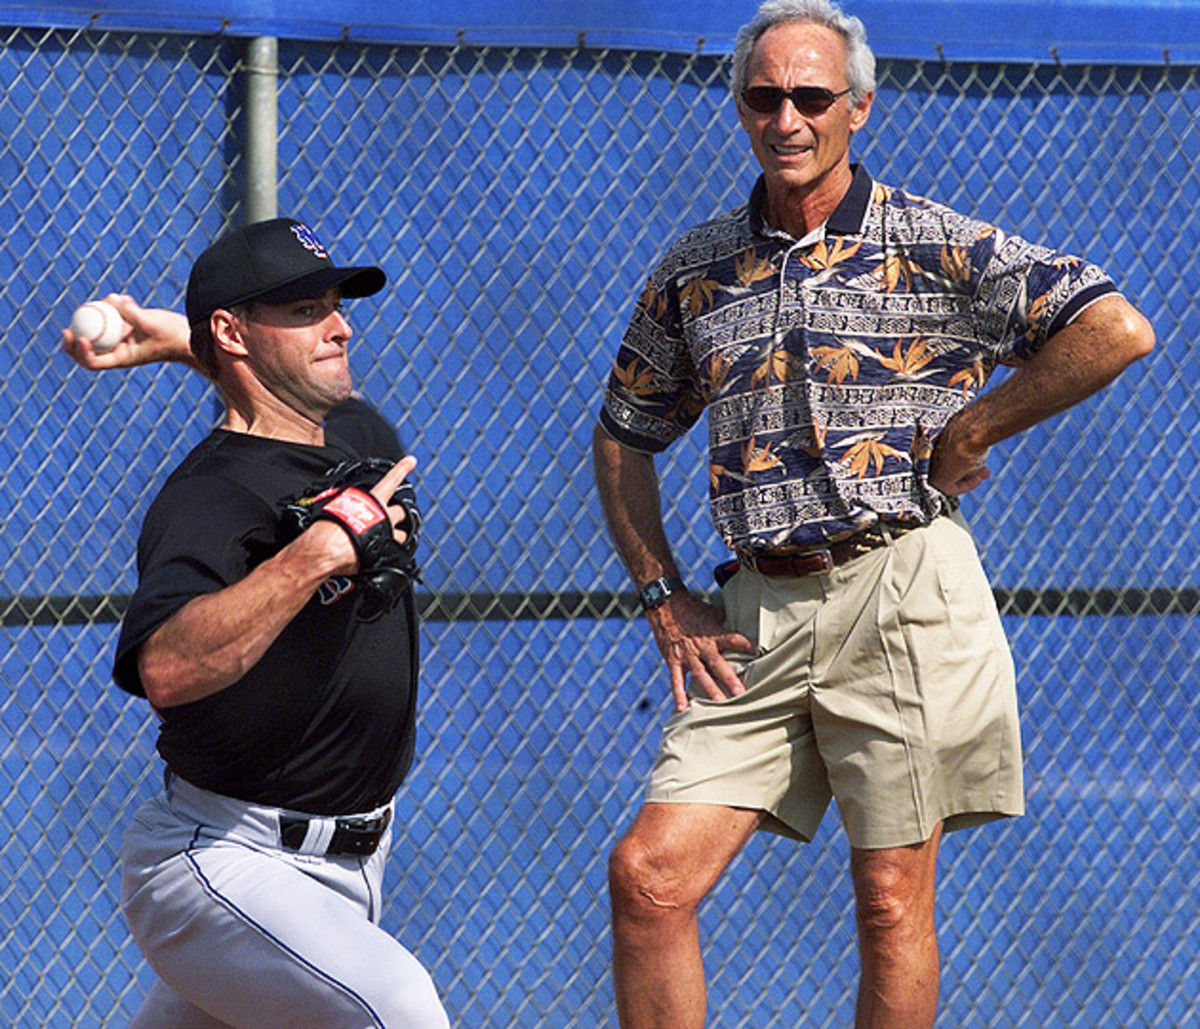 Koufax, watching Mets spring training in 2002, mentored Al Leiter later in the lefthander's career.